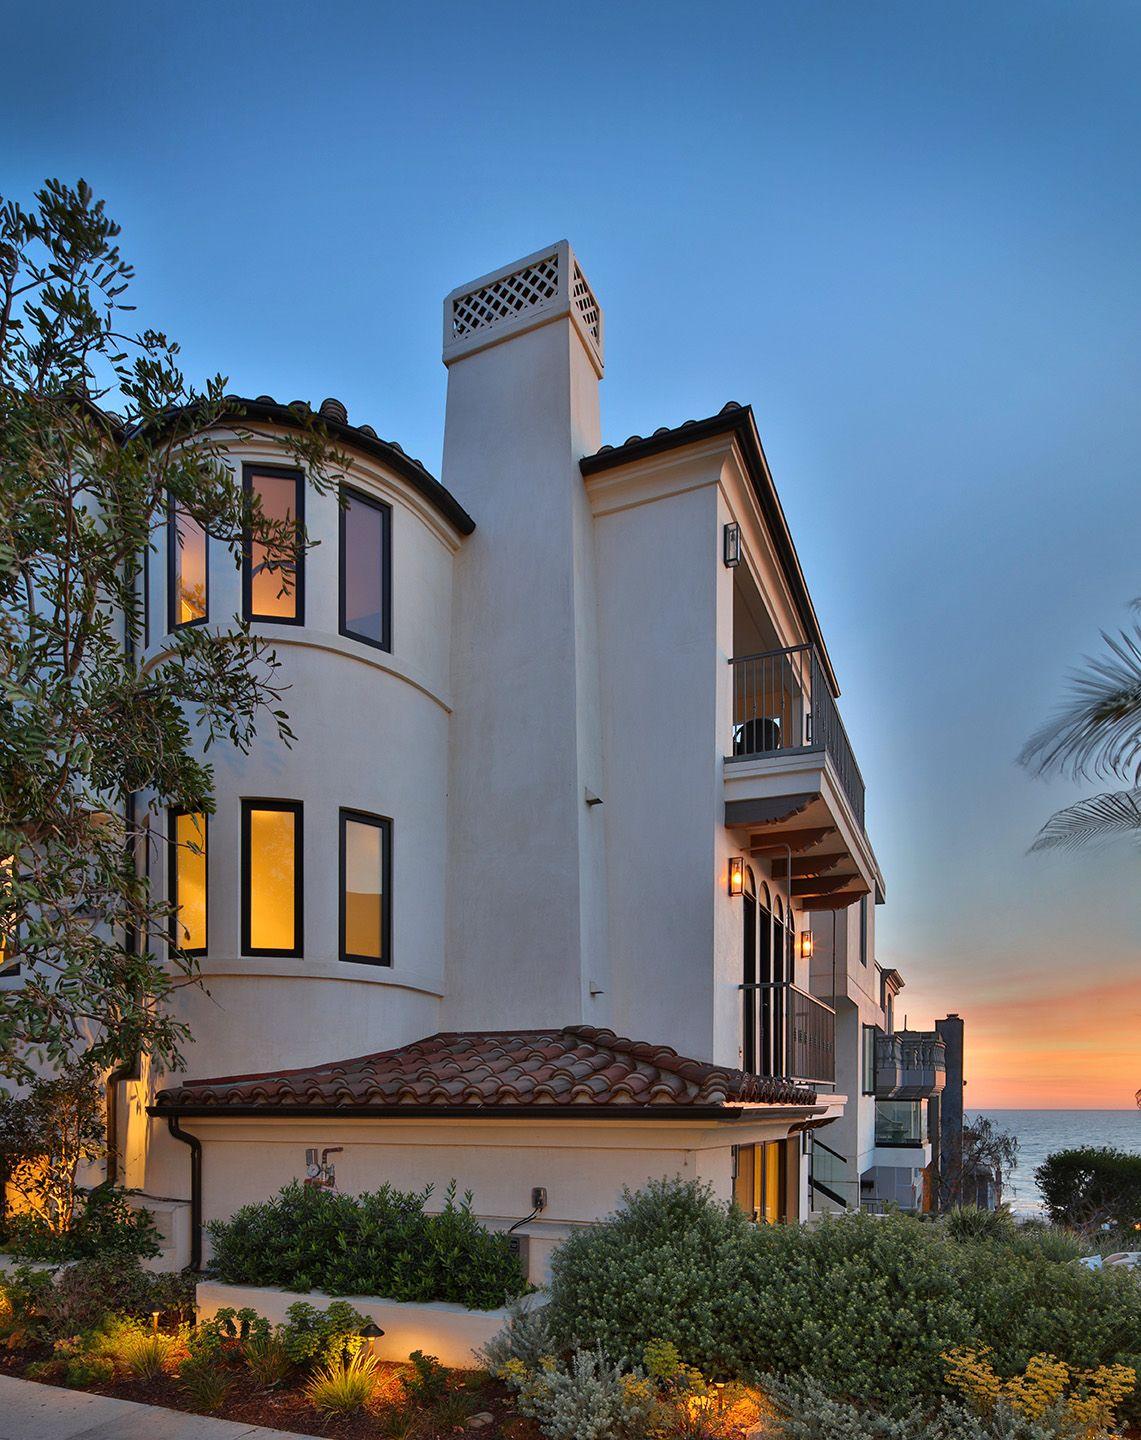 Spanish Luxury Home Exterior With Ocean View